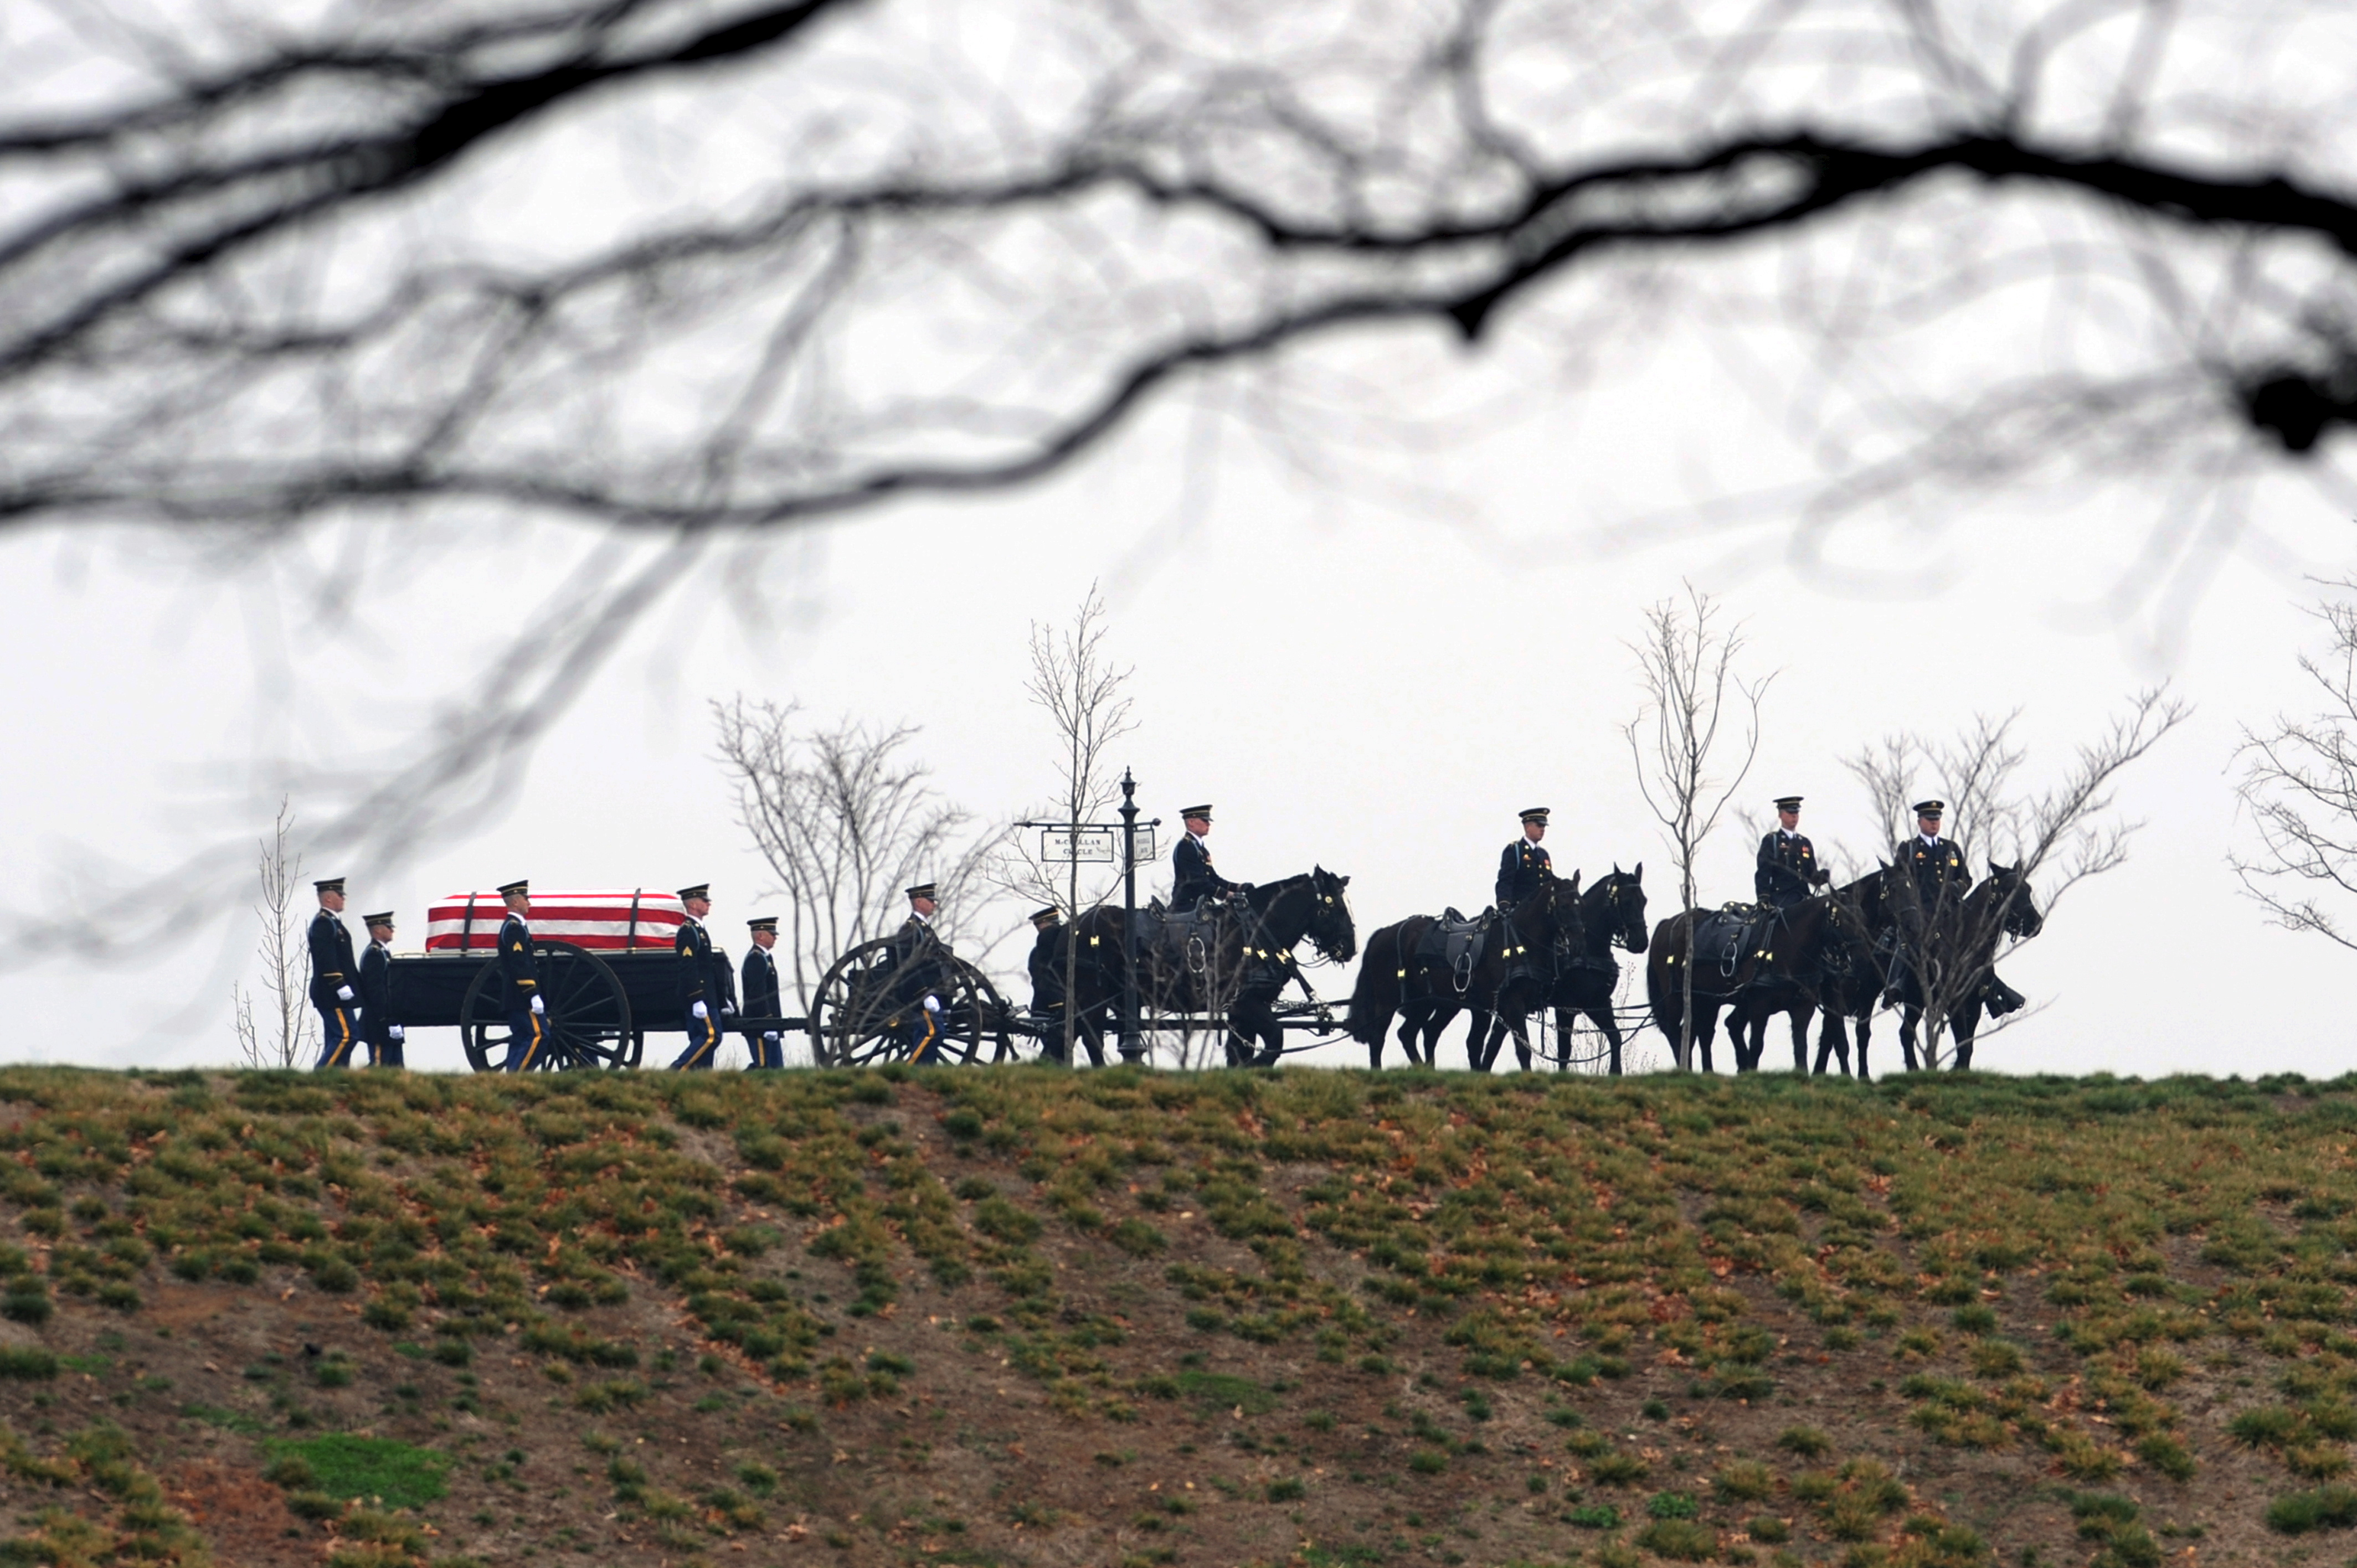 A caisson and casket team of the 3rd U.S. Infantry,  The Old Guard,  are seen behind tree branches on a hilltop during the burial service of U.S. Army Captain Brian M. Bunting, at Arlington National Cemetery in Va., March 16, 2009.